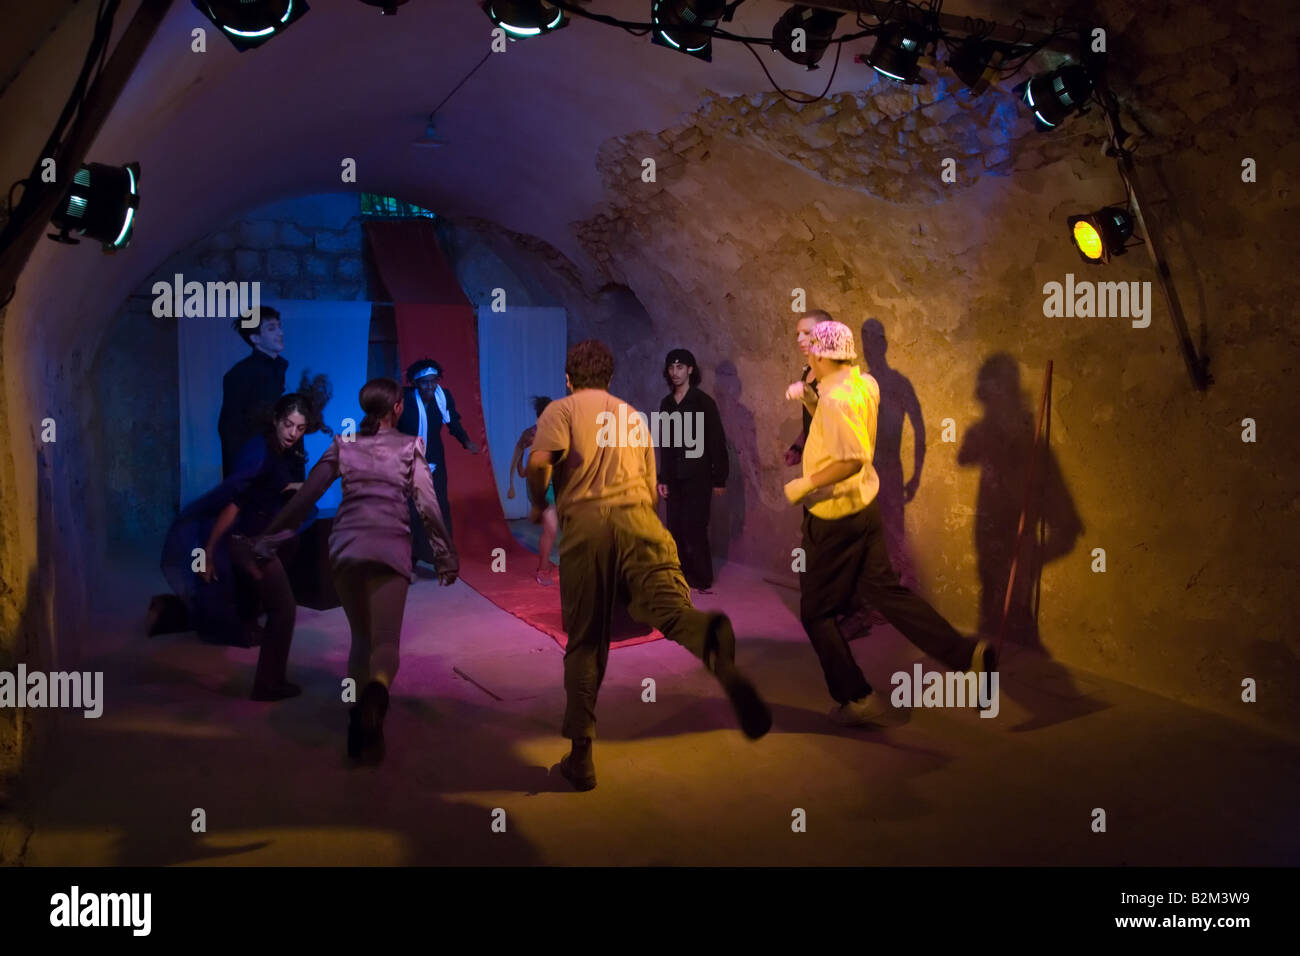 Martef Theatre Actors Warm Up for Faust by Johann Wolfgang von Goethe - Stock Image